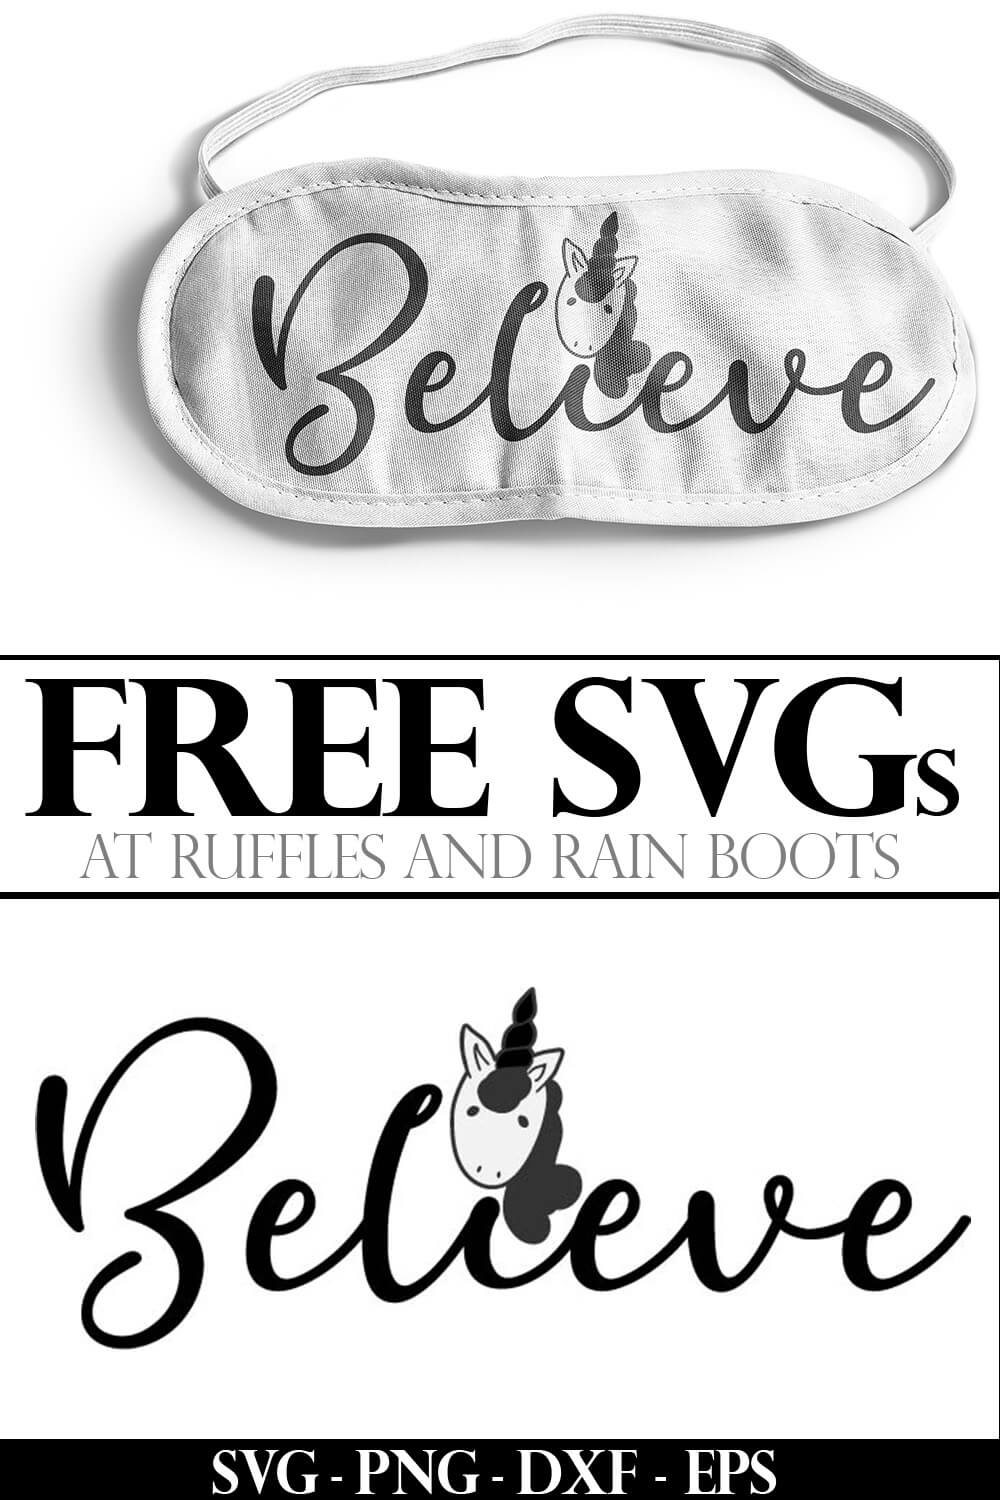 Believe free unicorn cut file for cricut on sleep mask on a white background with text which reads free svgs